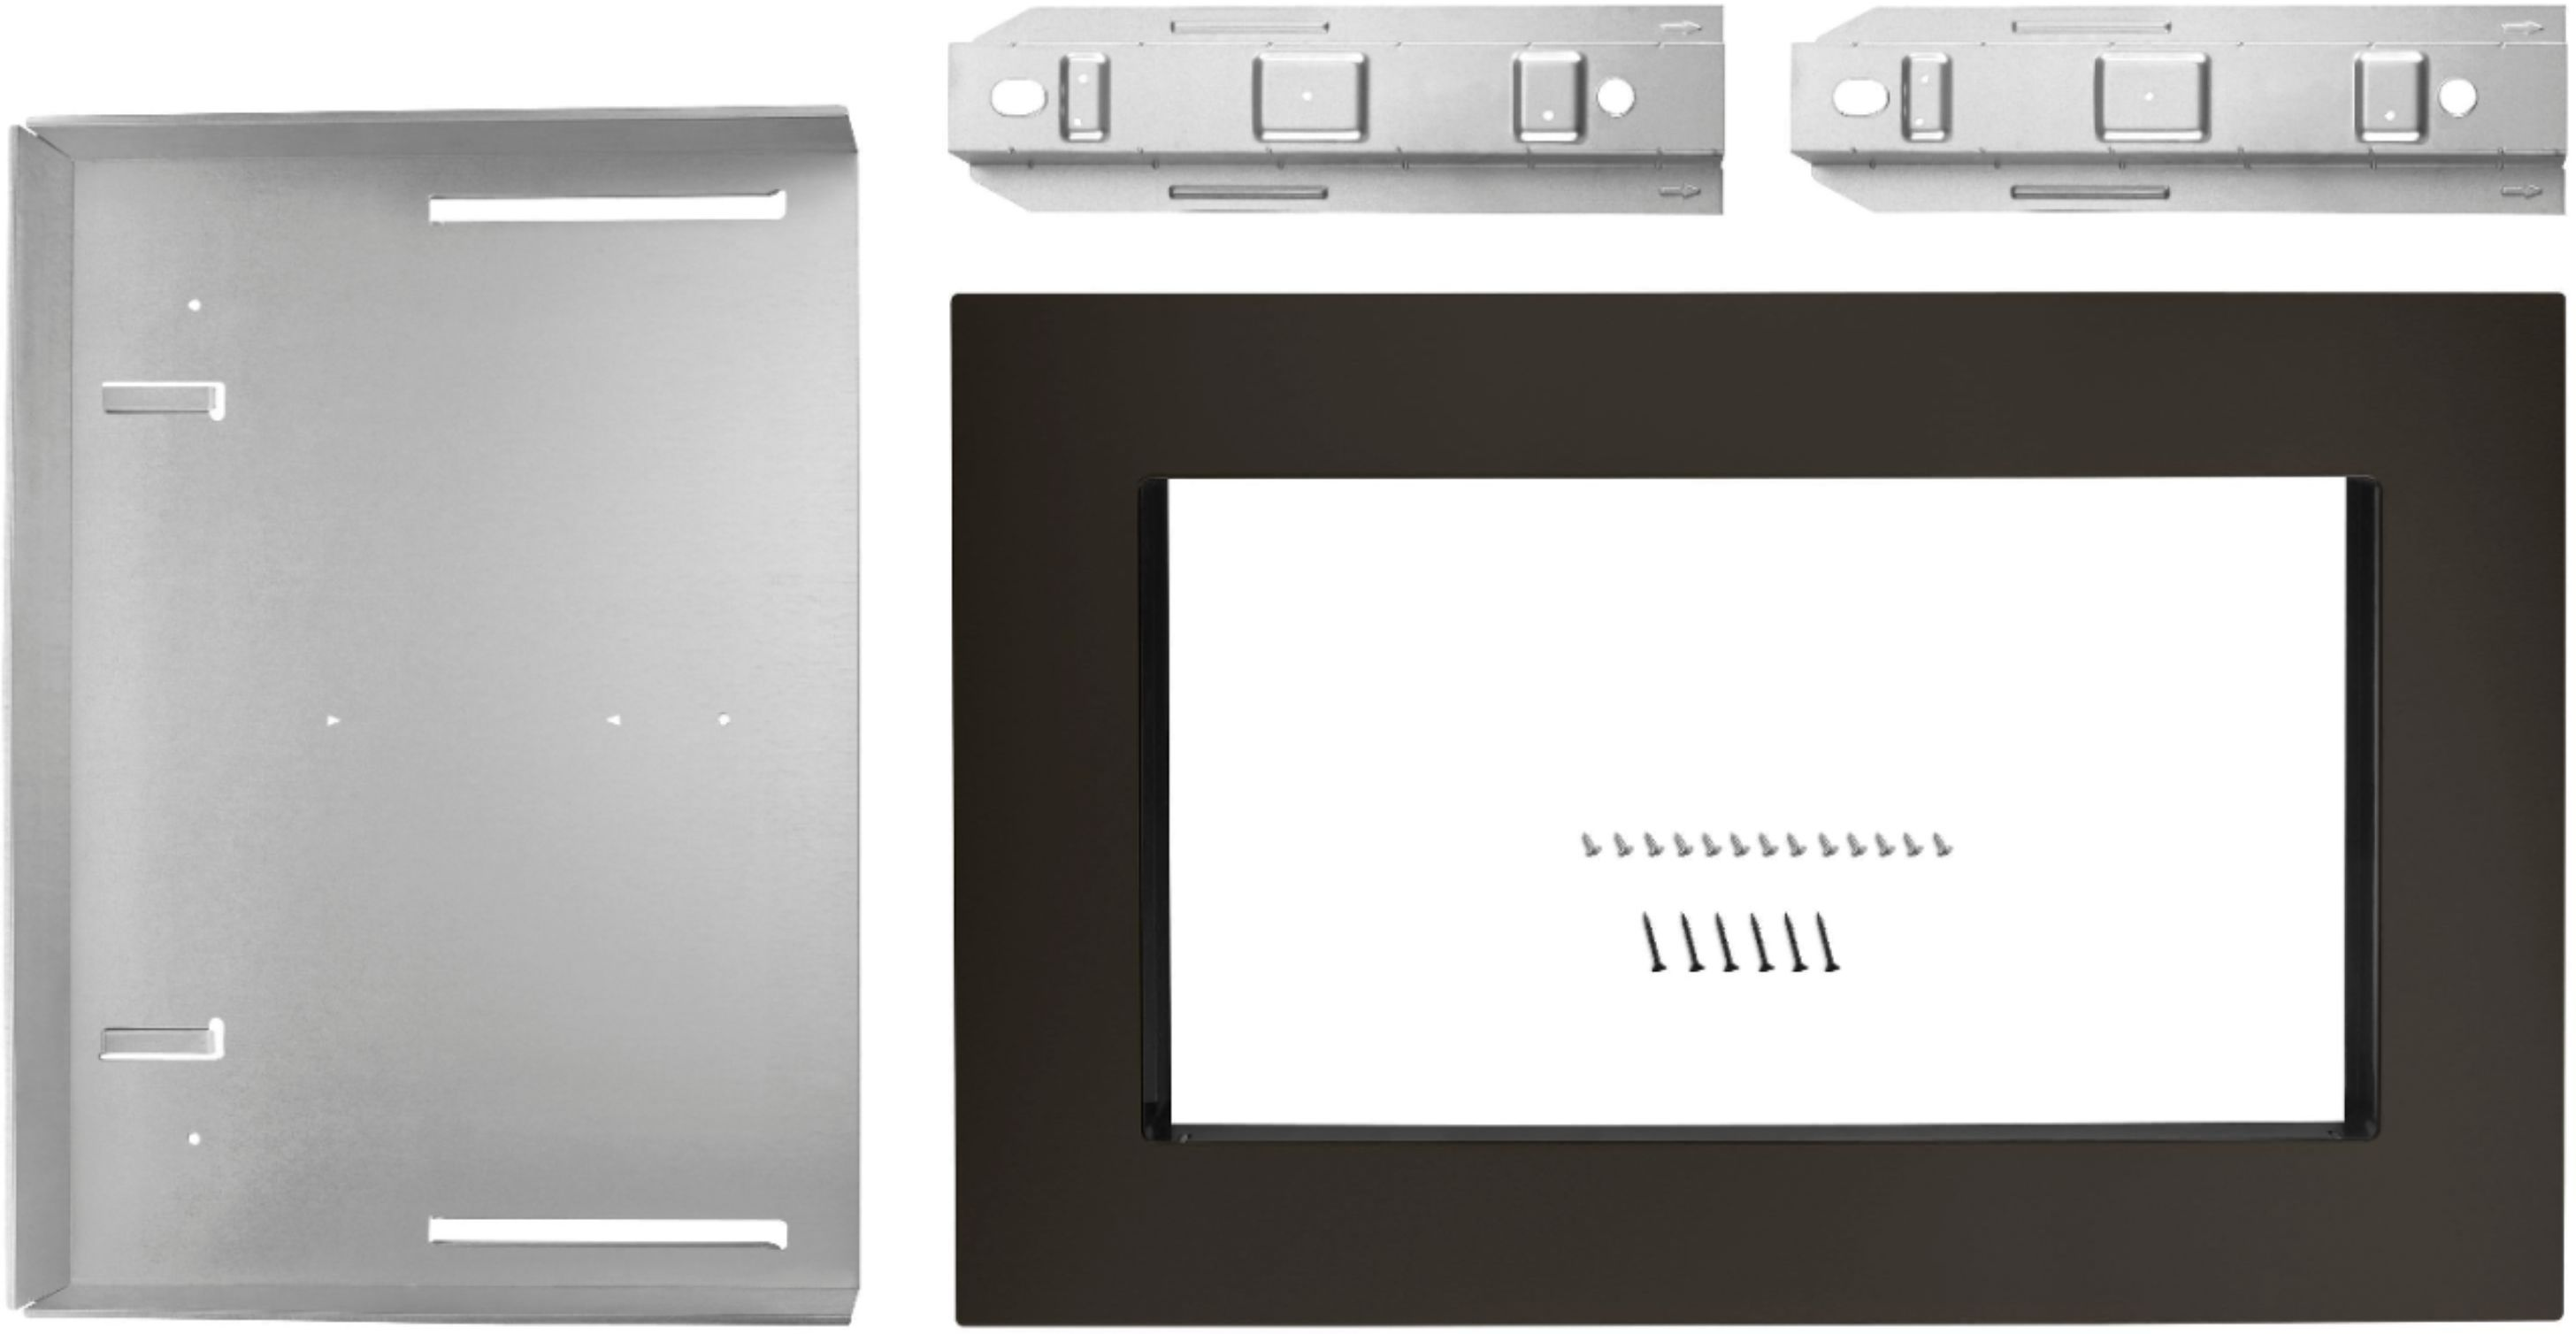 27 trim kit for whirlpool 2 2 cu ft countertop microwave ovens black stainless steel